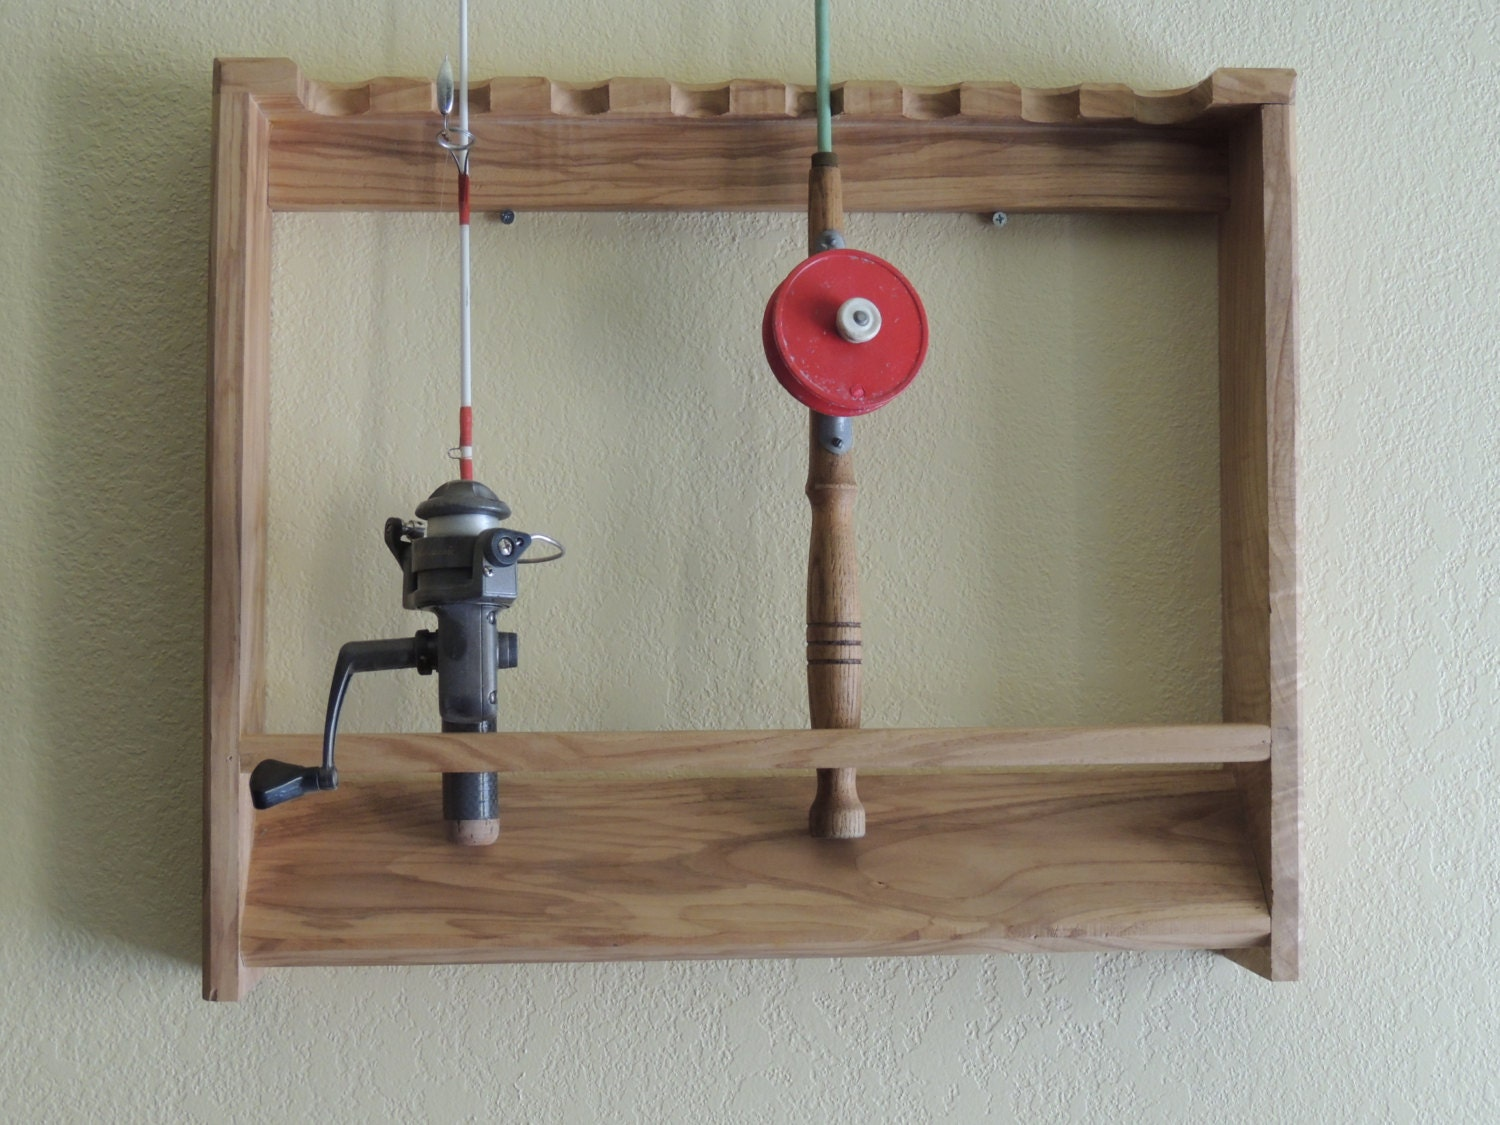 Ice fishing rod holder wall mounted rack for Wall fishing rod holder